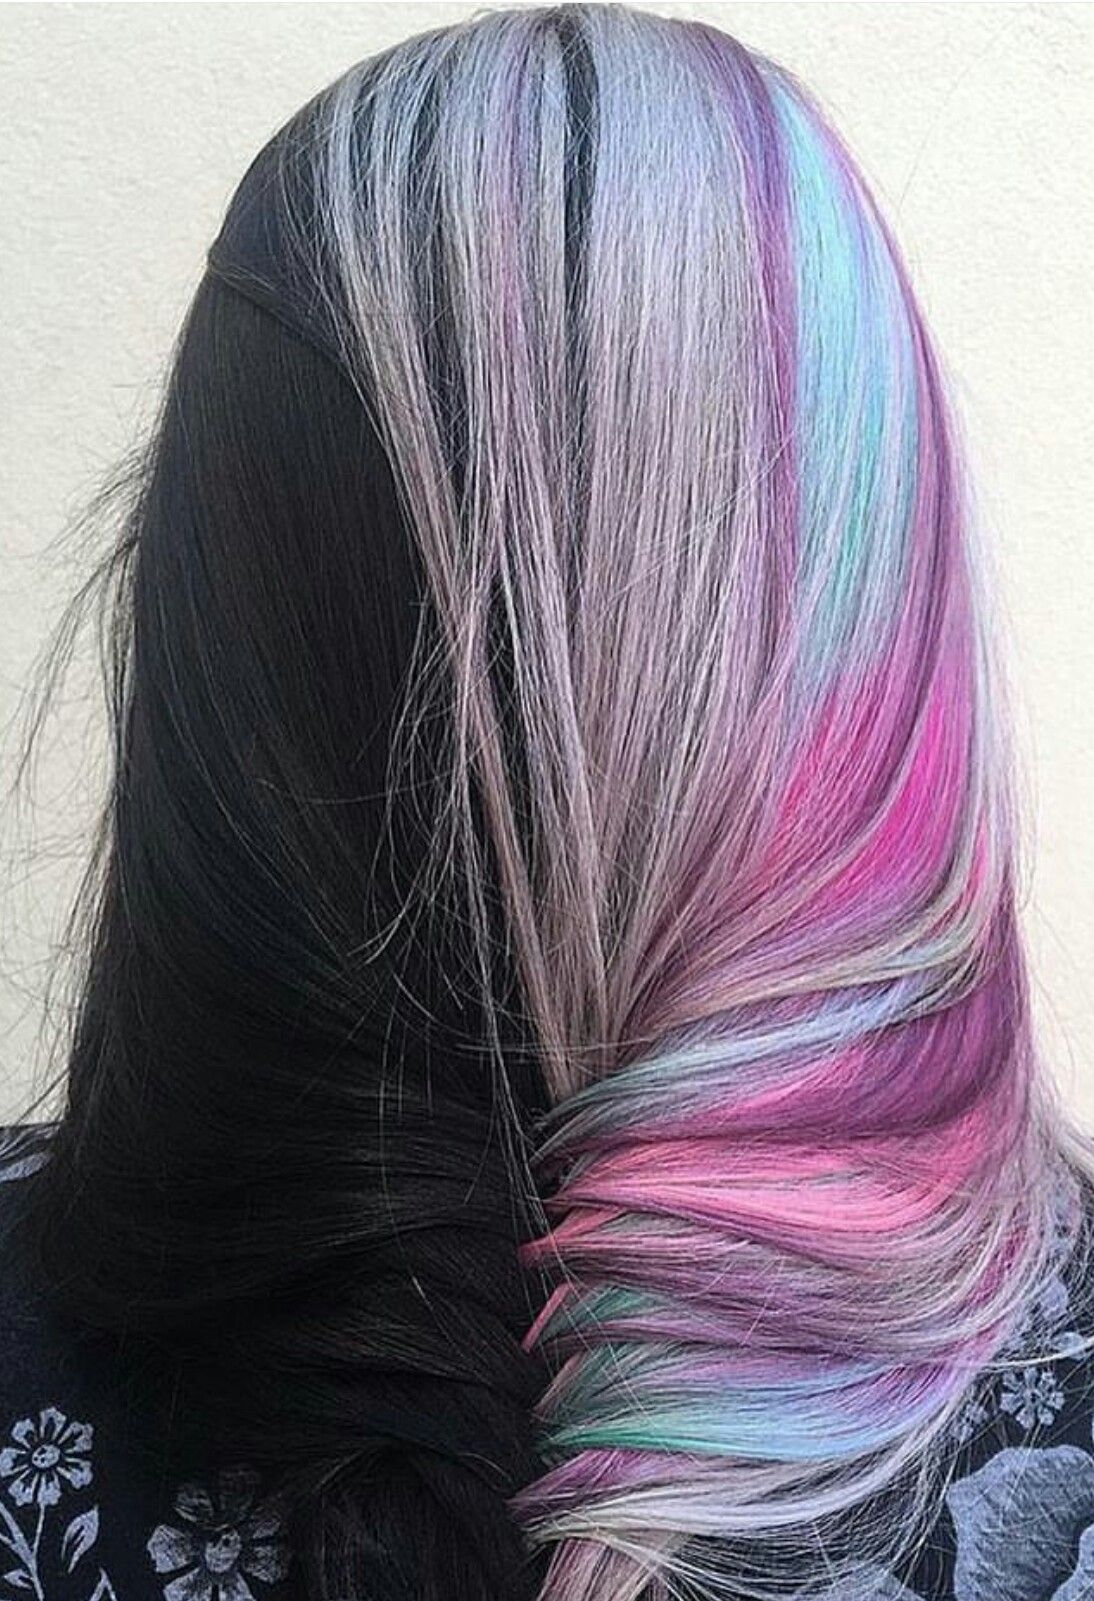 Wall Colour Inspiration: Half Dyed Fishtail Braided Hair Color Inspiration Idea